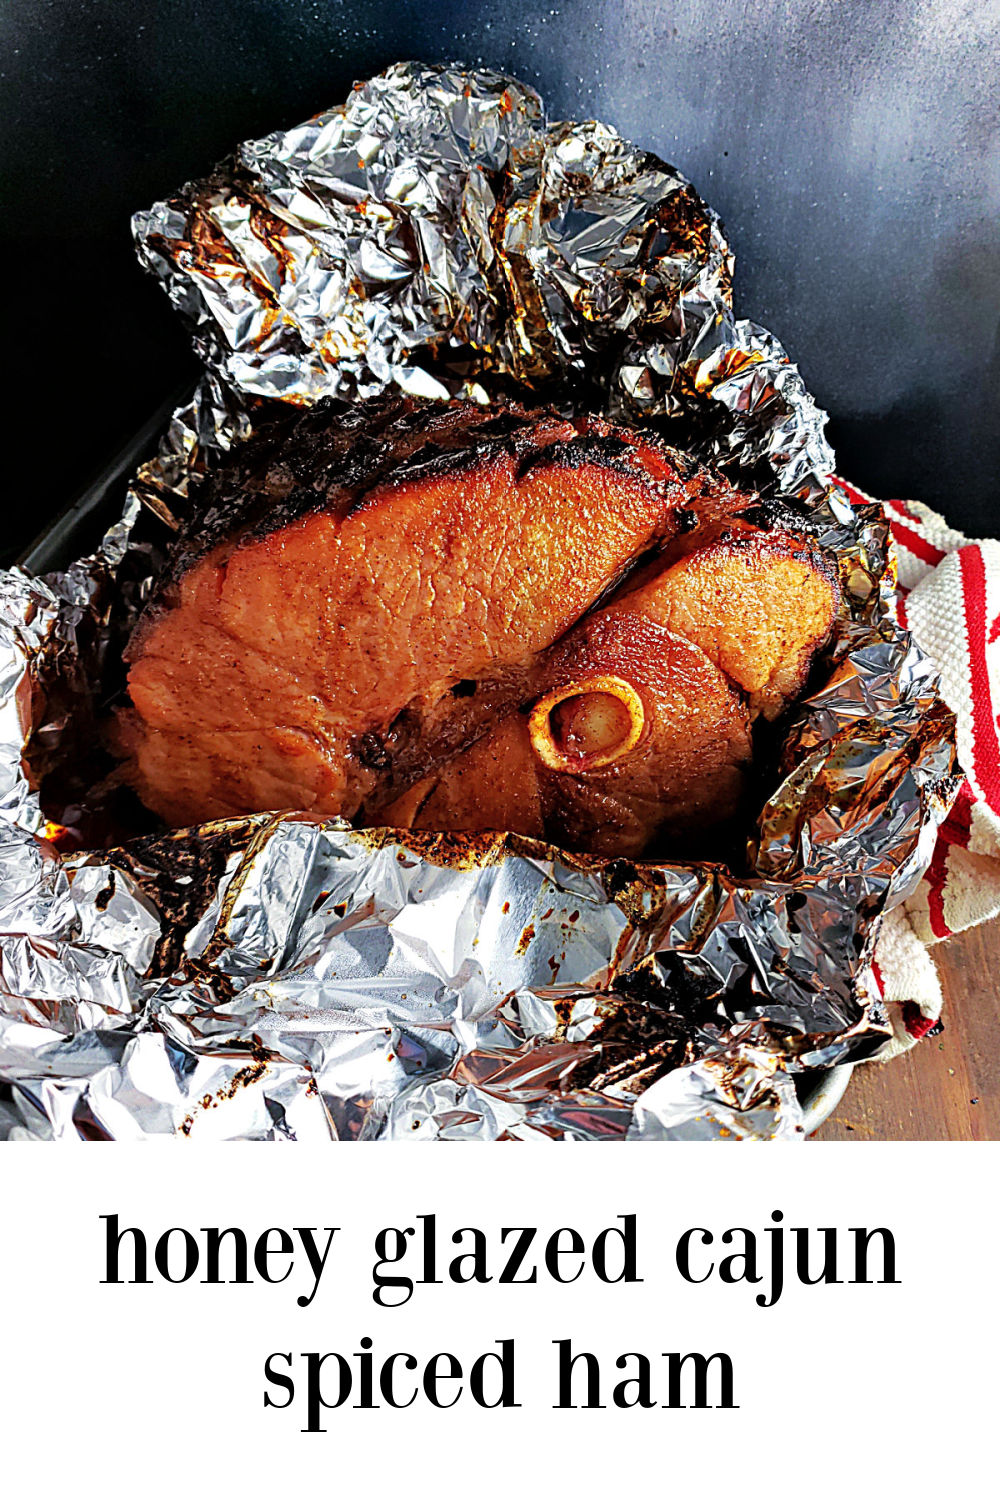 Honey Glazed Cajun Spiced Ham is a fave. The honey spiced glaze hits the perfect sweet spot, the magical place where your taste buds sing without any real heat. #HoneyGlazedCajunHam #HoneyGlazedHam #Cajun Ham #PaulPrudhomme